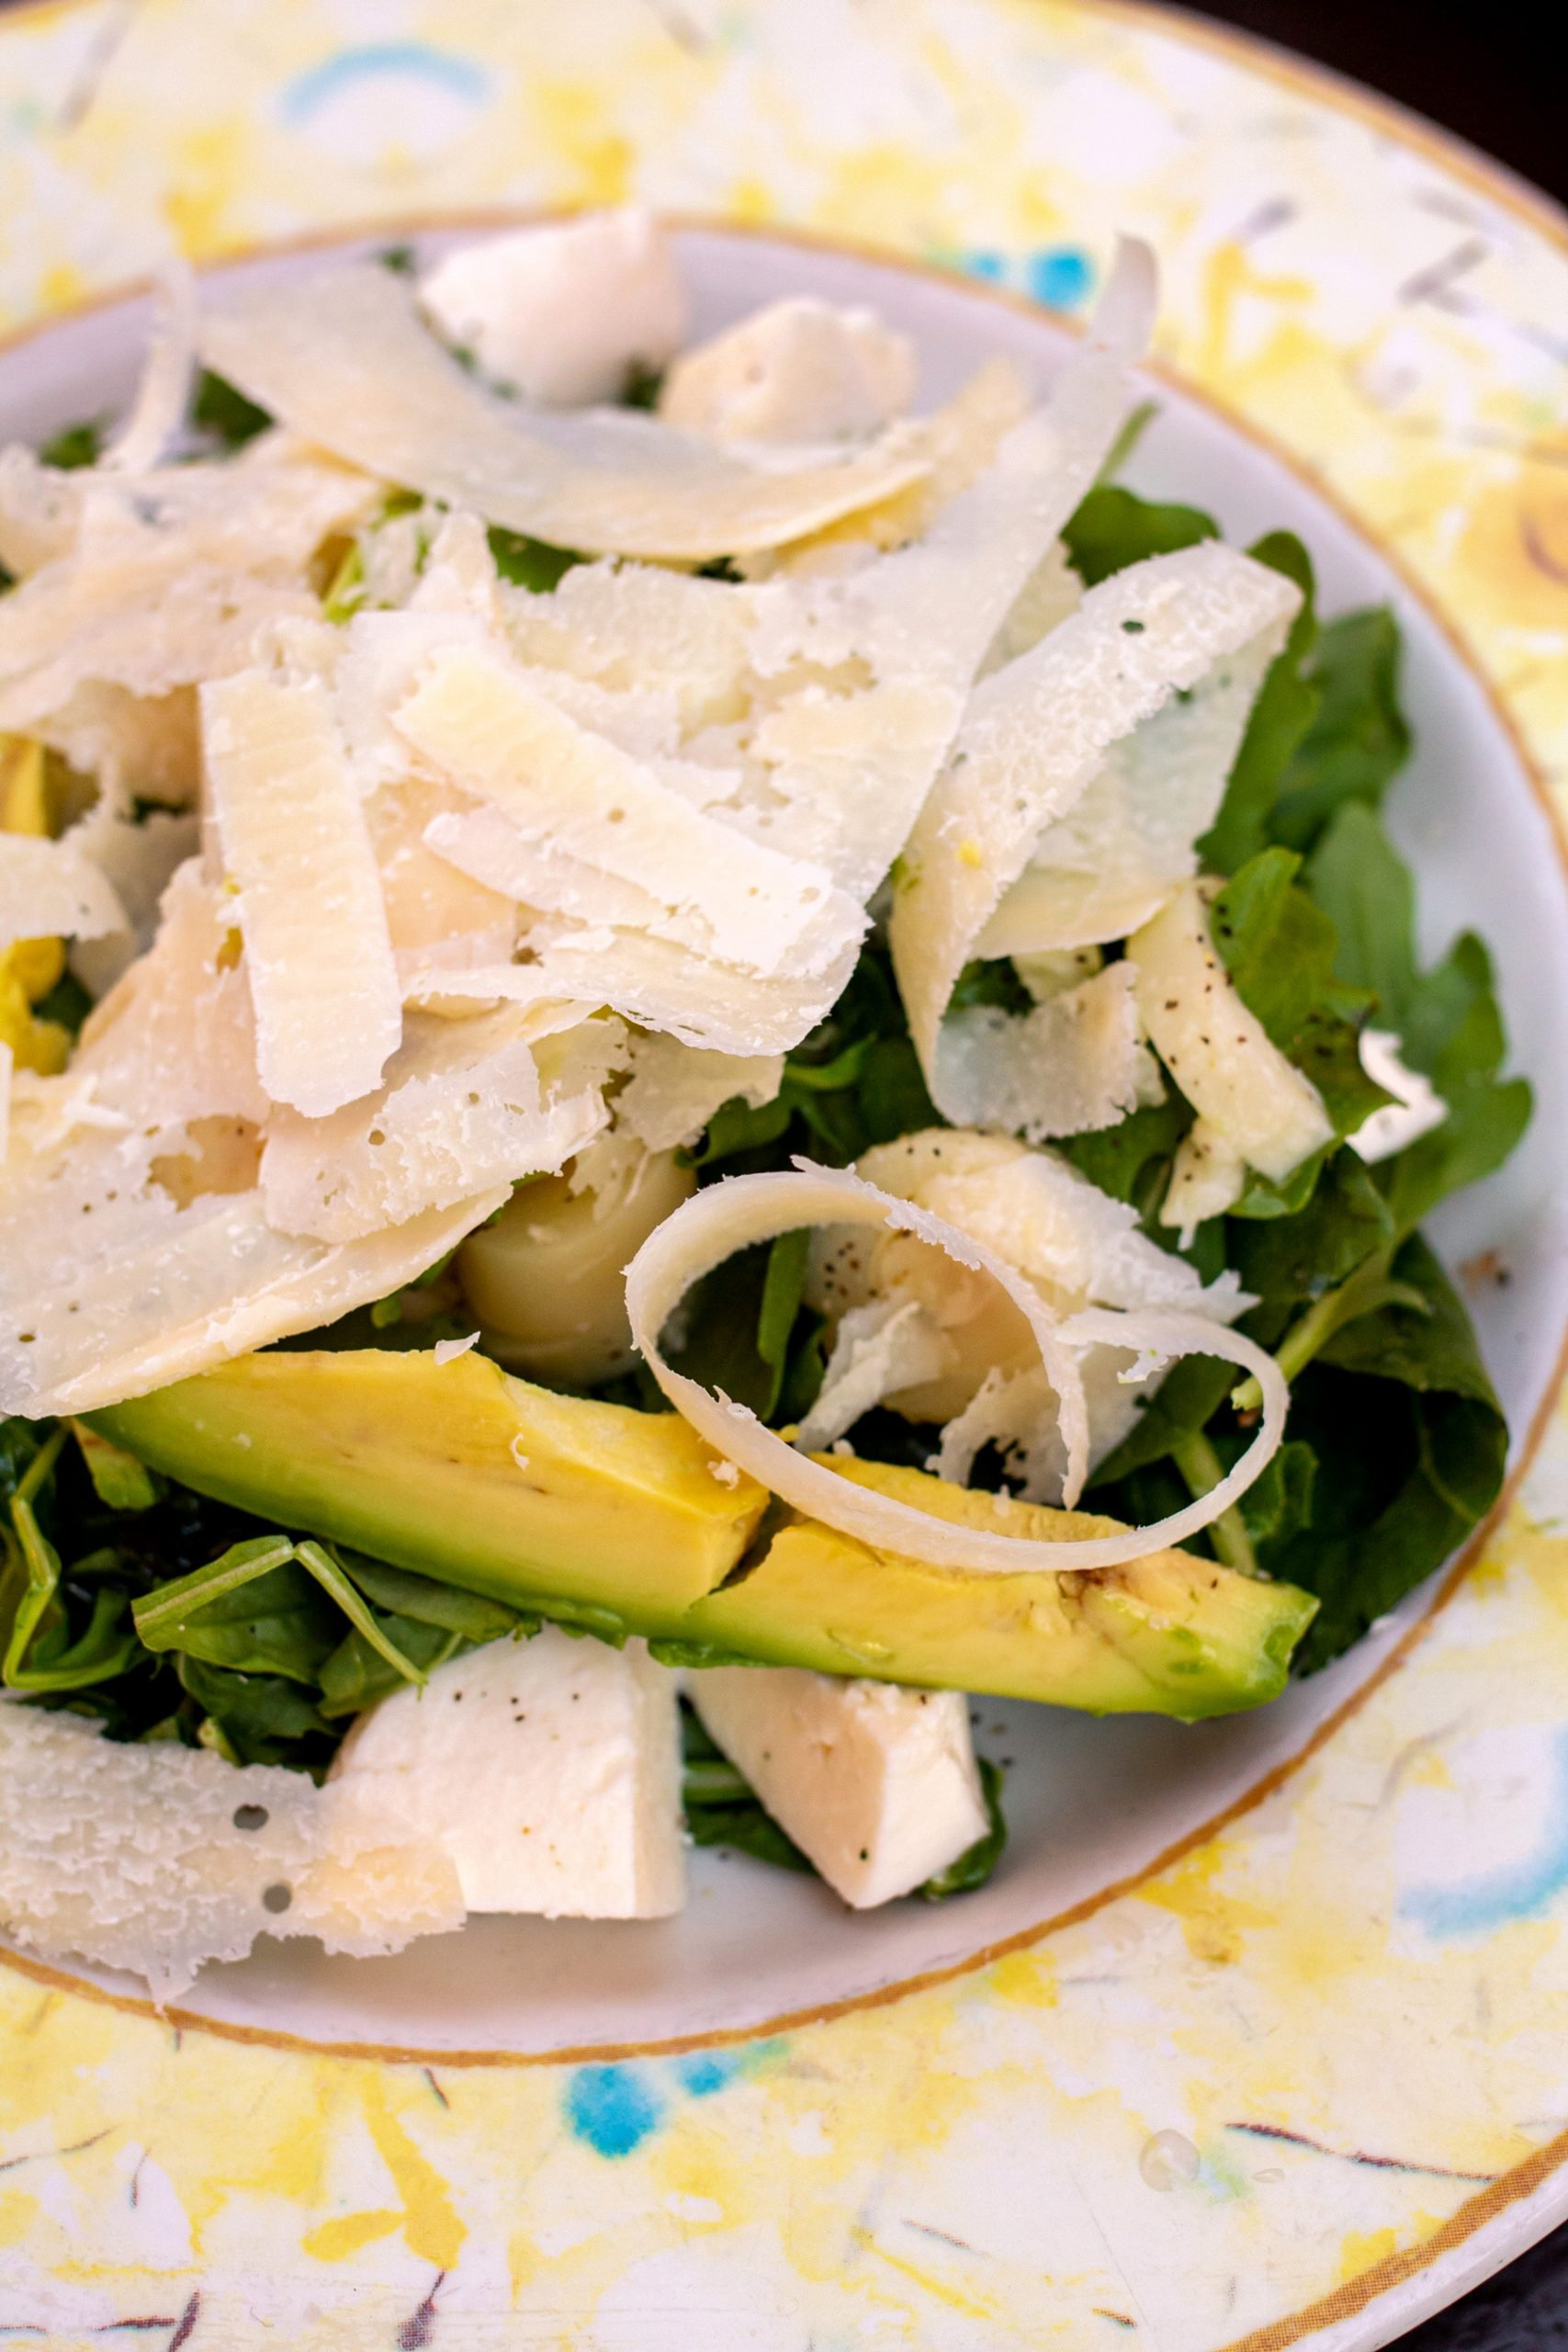 Arugula salad with sliced avocado, hearts of palm, and shredded cheese.